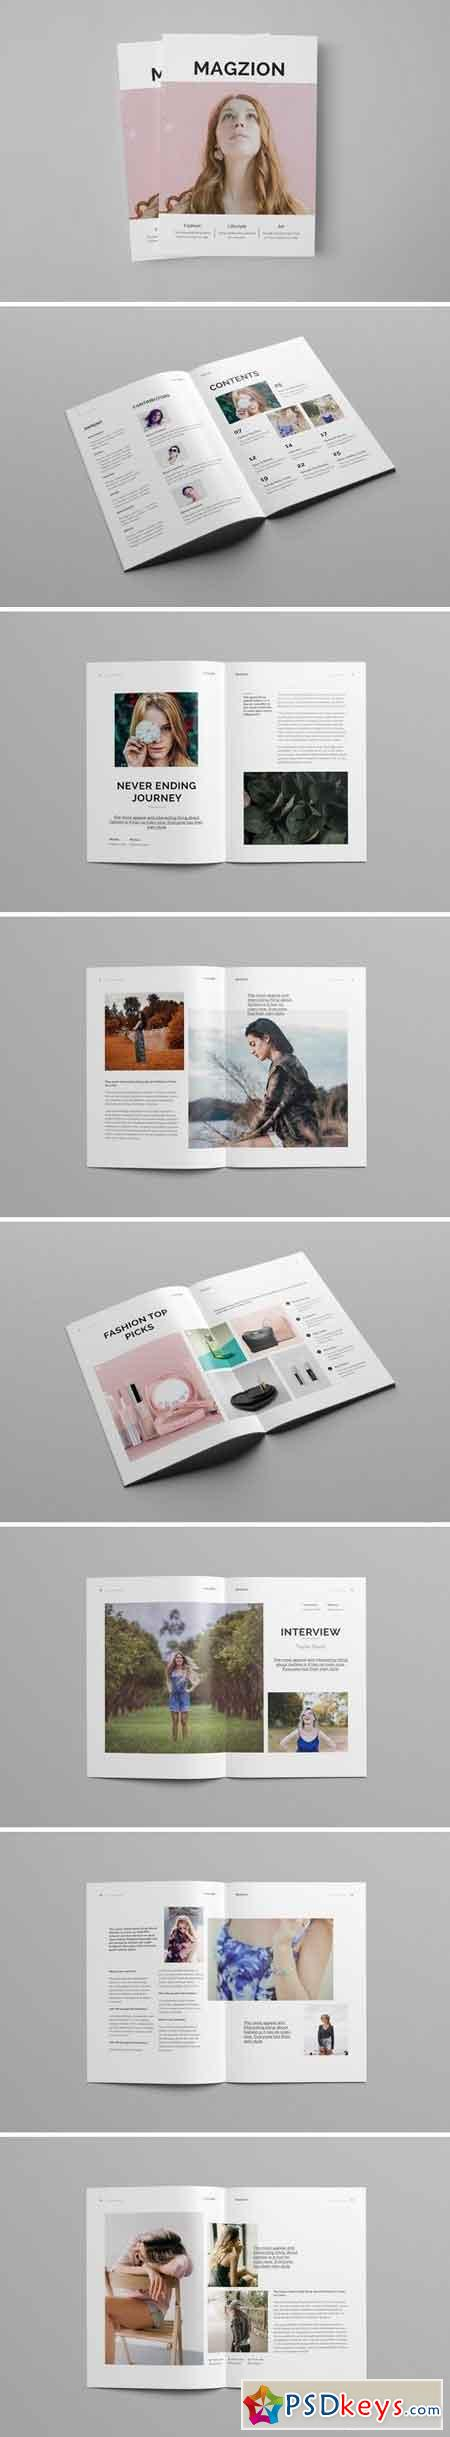 Creative Minimal Fashion Magazine 2384054